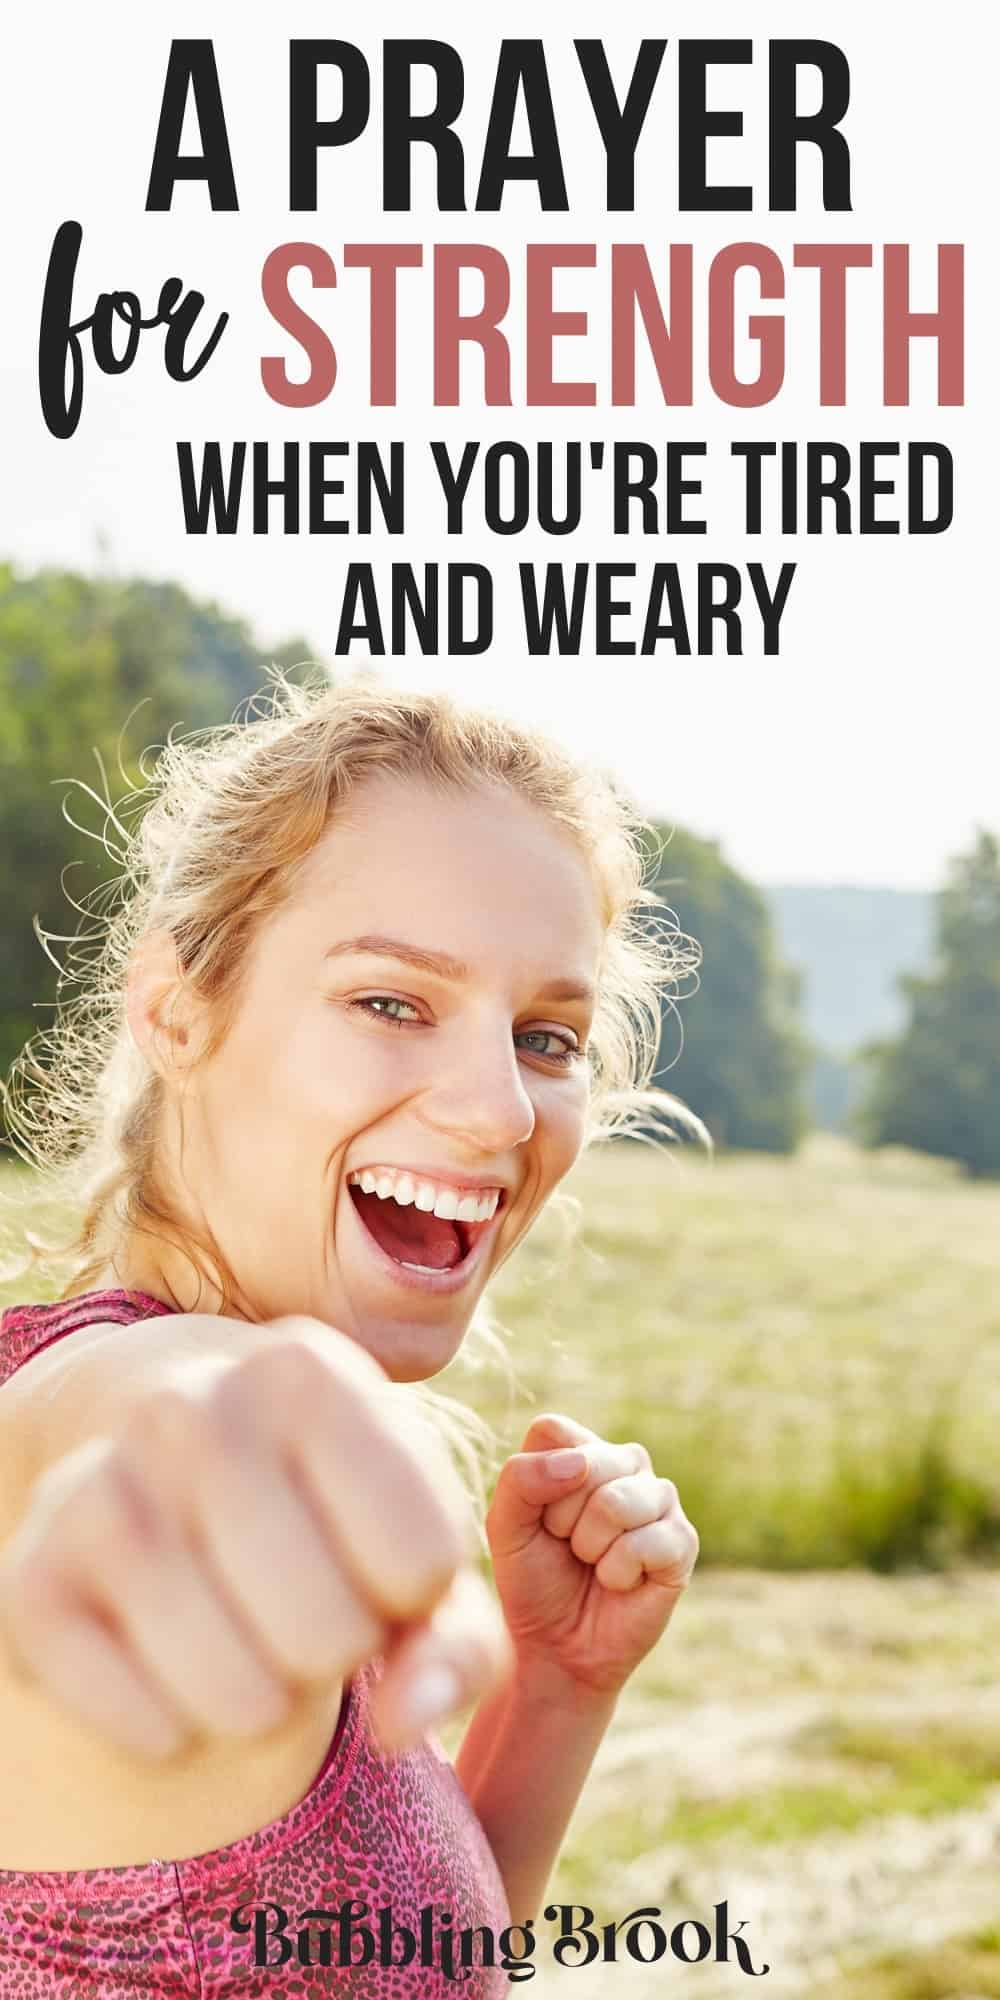 Lord I am tired and weary - Prayer For Mental Strength When You're Tired - pin for Pinterest